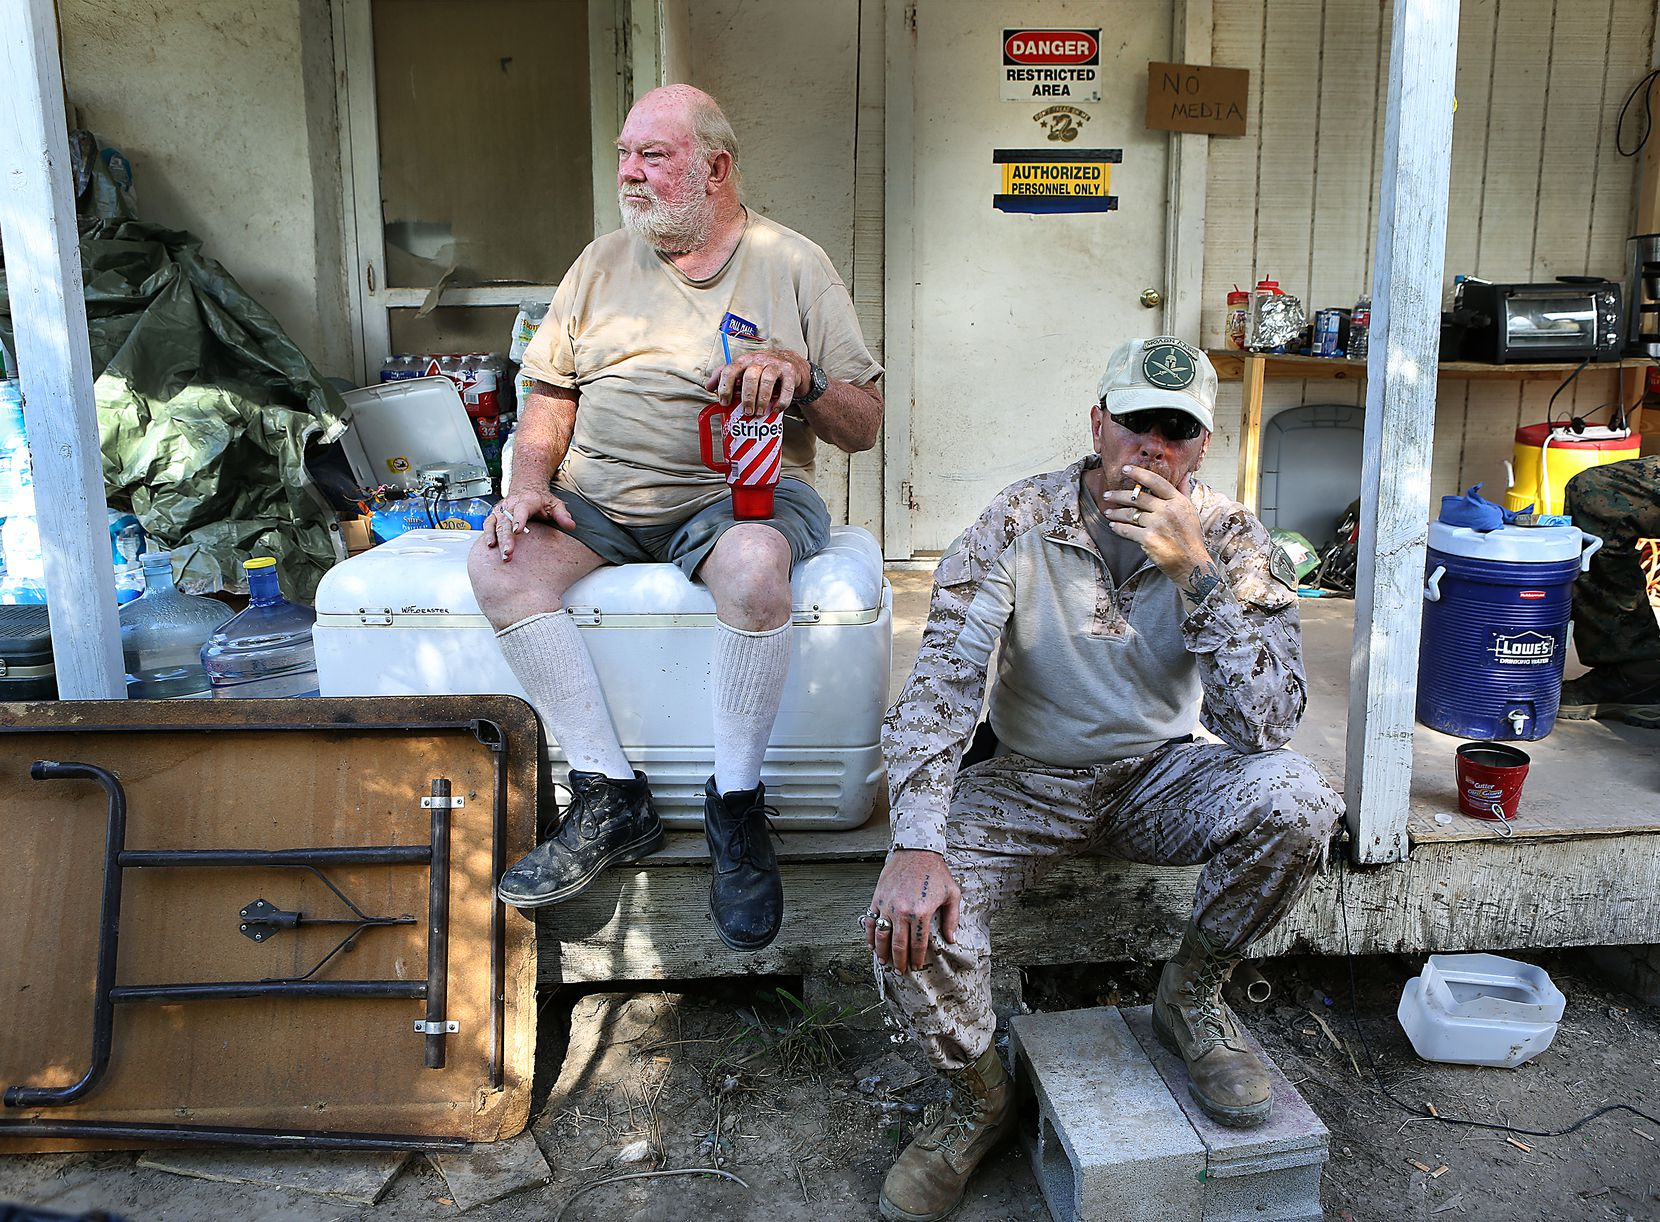 Kevin Massey, right, takes a drag on a cigarette as he sits with land owner Rusty Monsees Jr. Monsees asked the militia group called Camp Lone Star, to set up camp on his property along the Rio Grande River in Brownsville on September 10, 2014